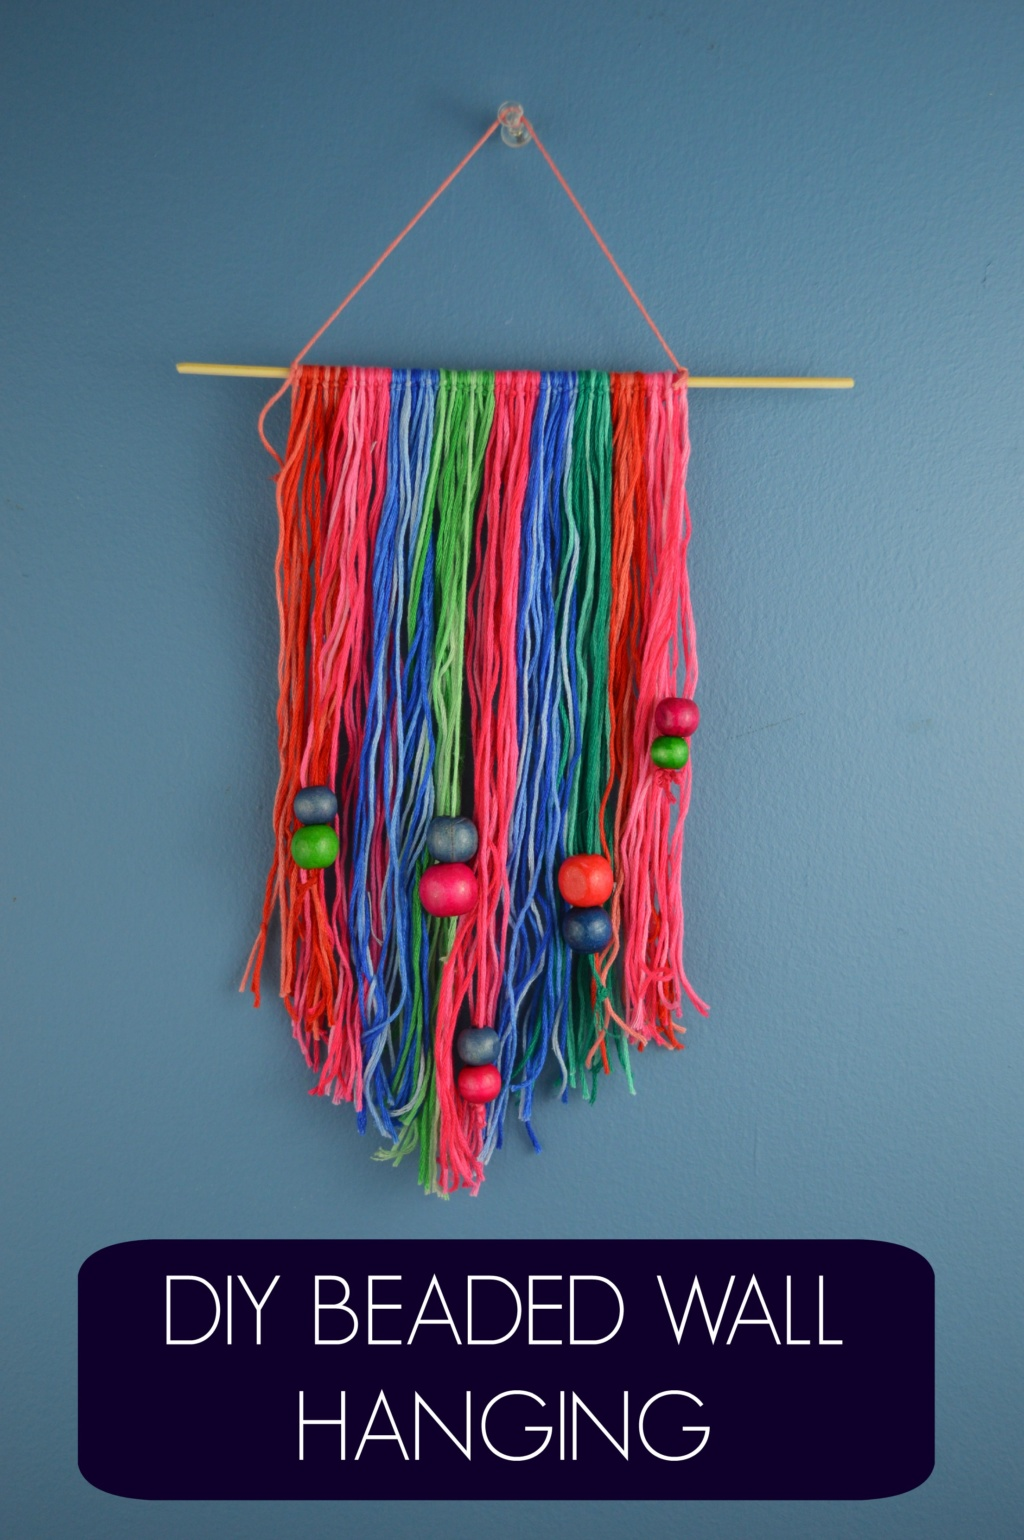 DIY Beaded Wall Hanging